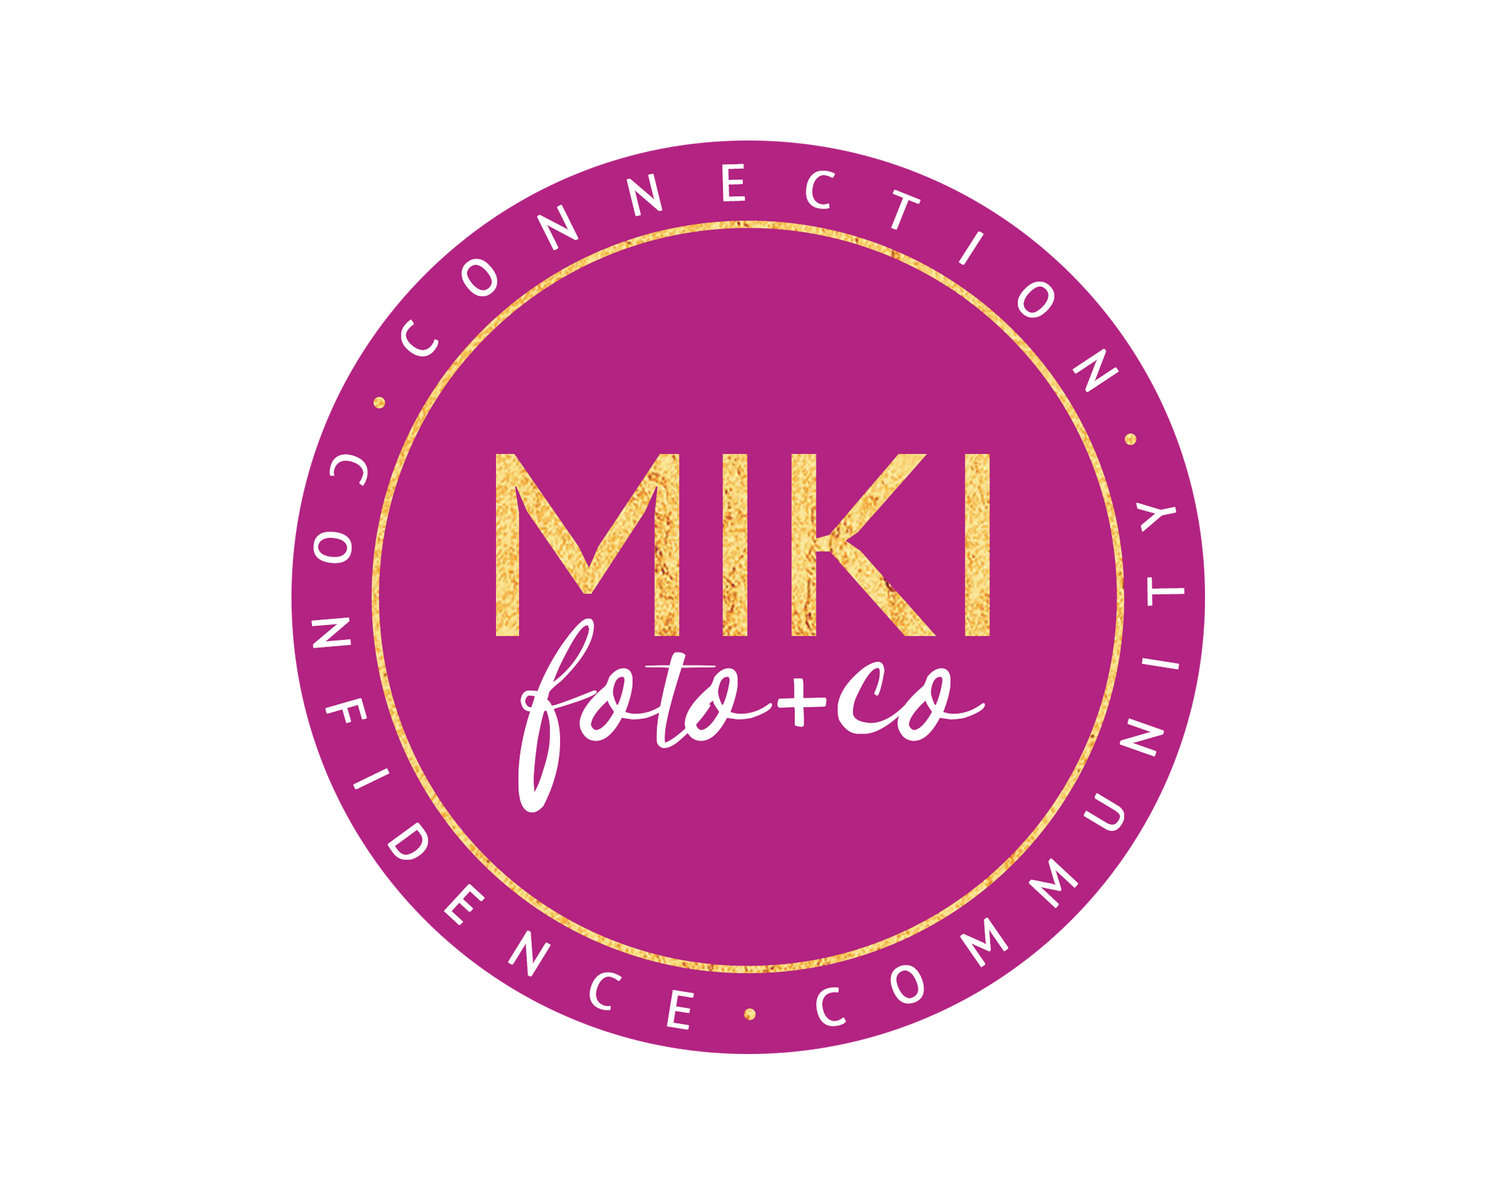 MikiFoto + Co